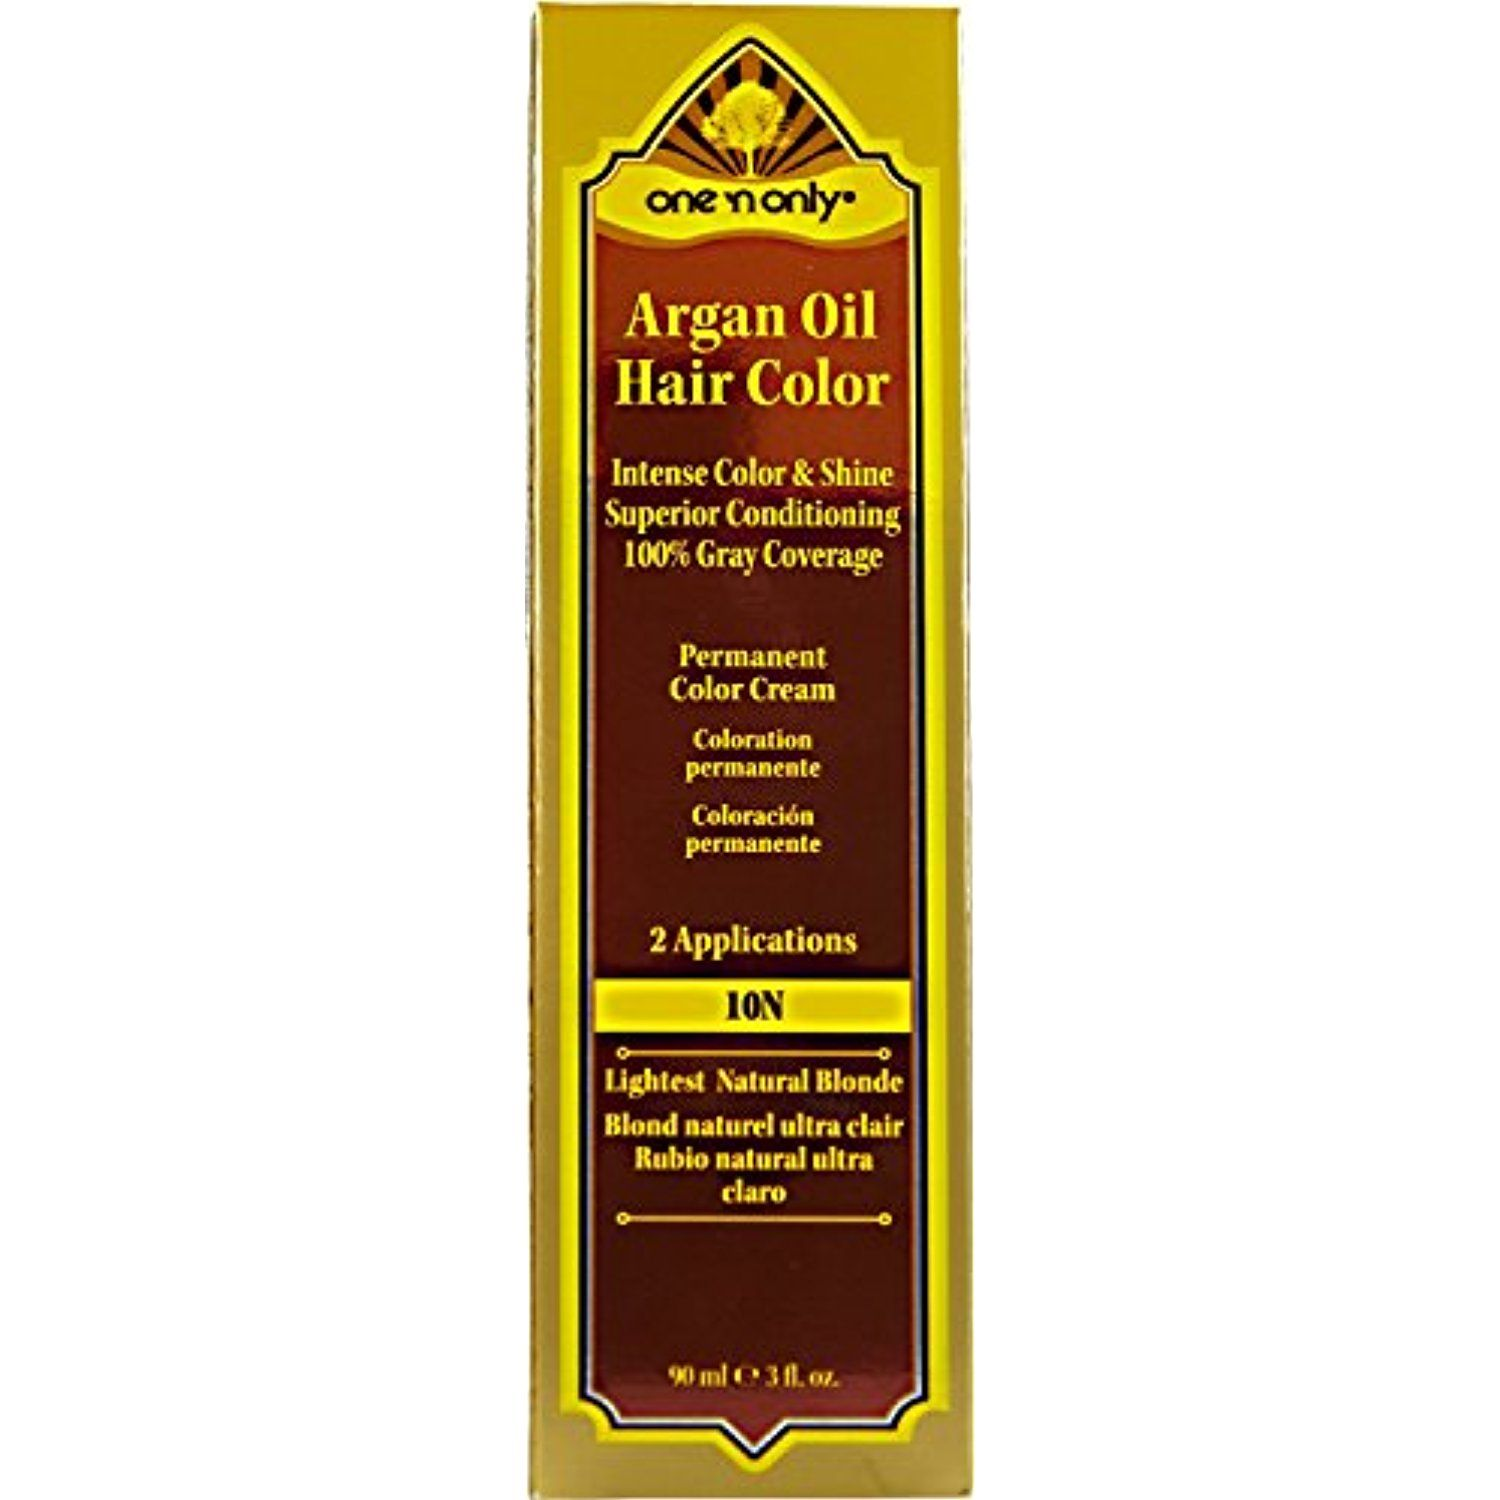 One N Only Argan Oil Hair Color 10n Lightest Natural Blonde You